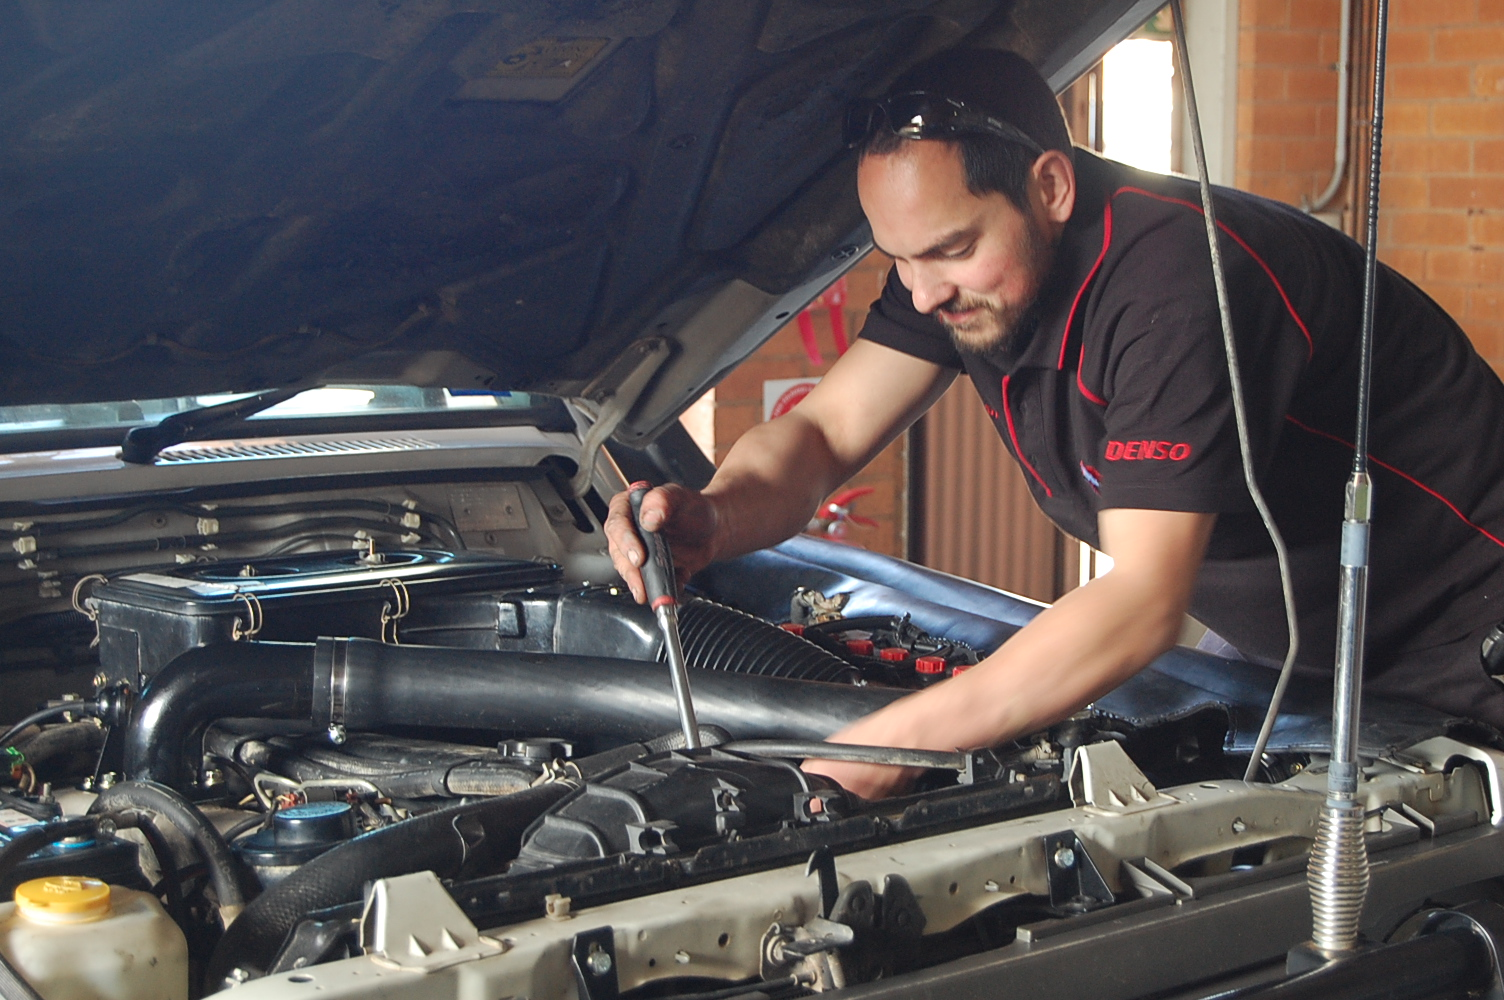 Cooma Diesel Service - Canberra | Diesel Fuel Injection Specialists